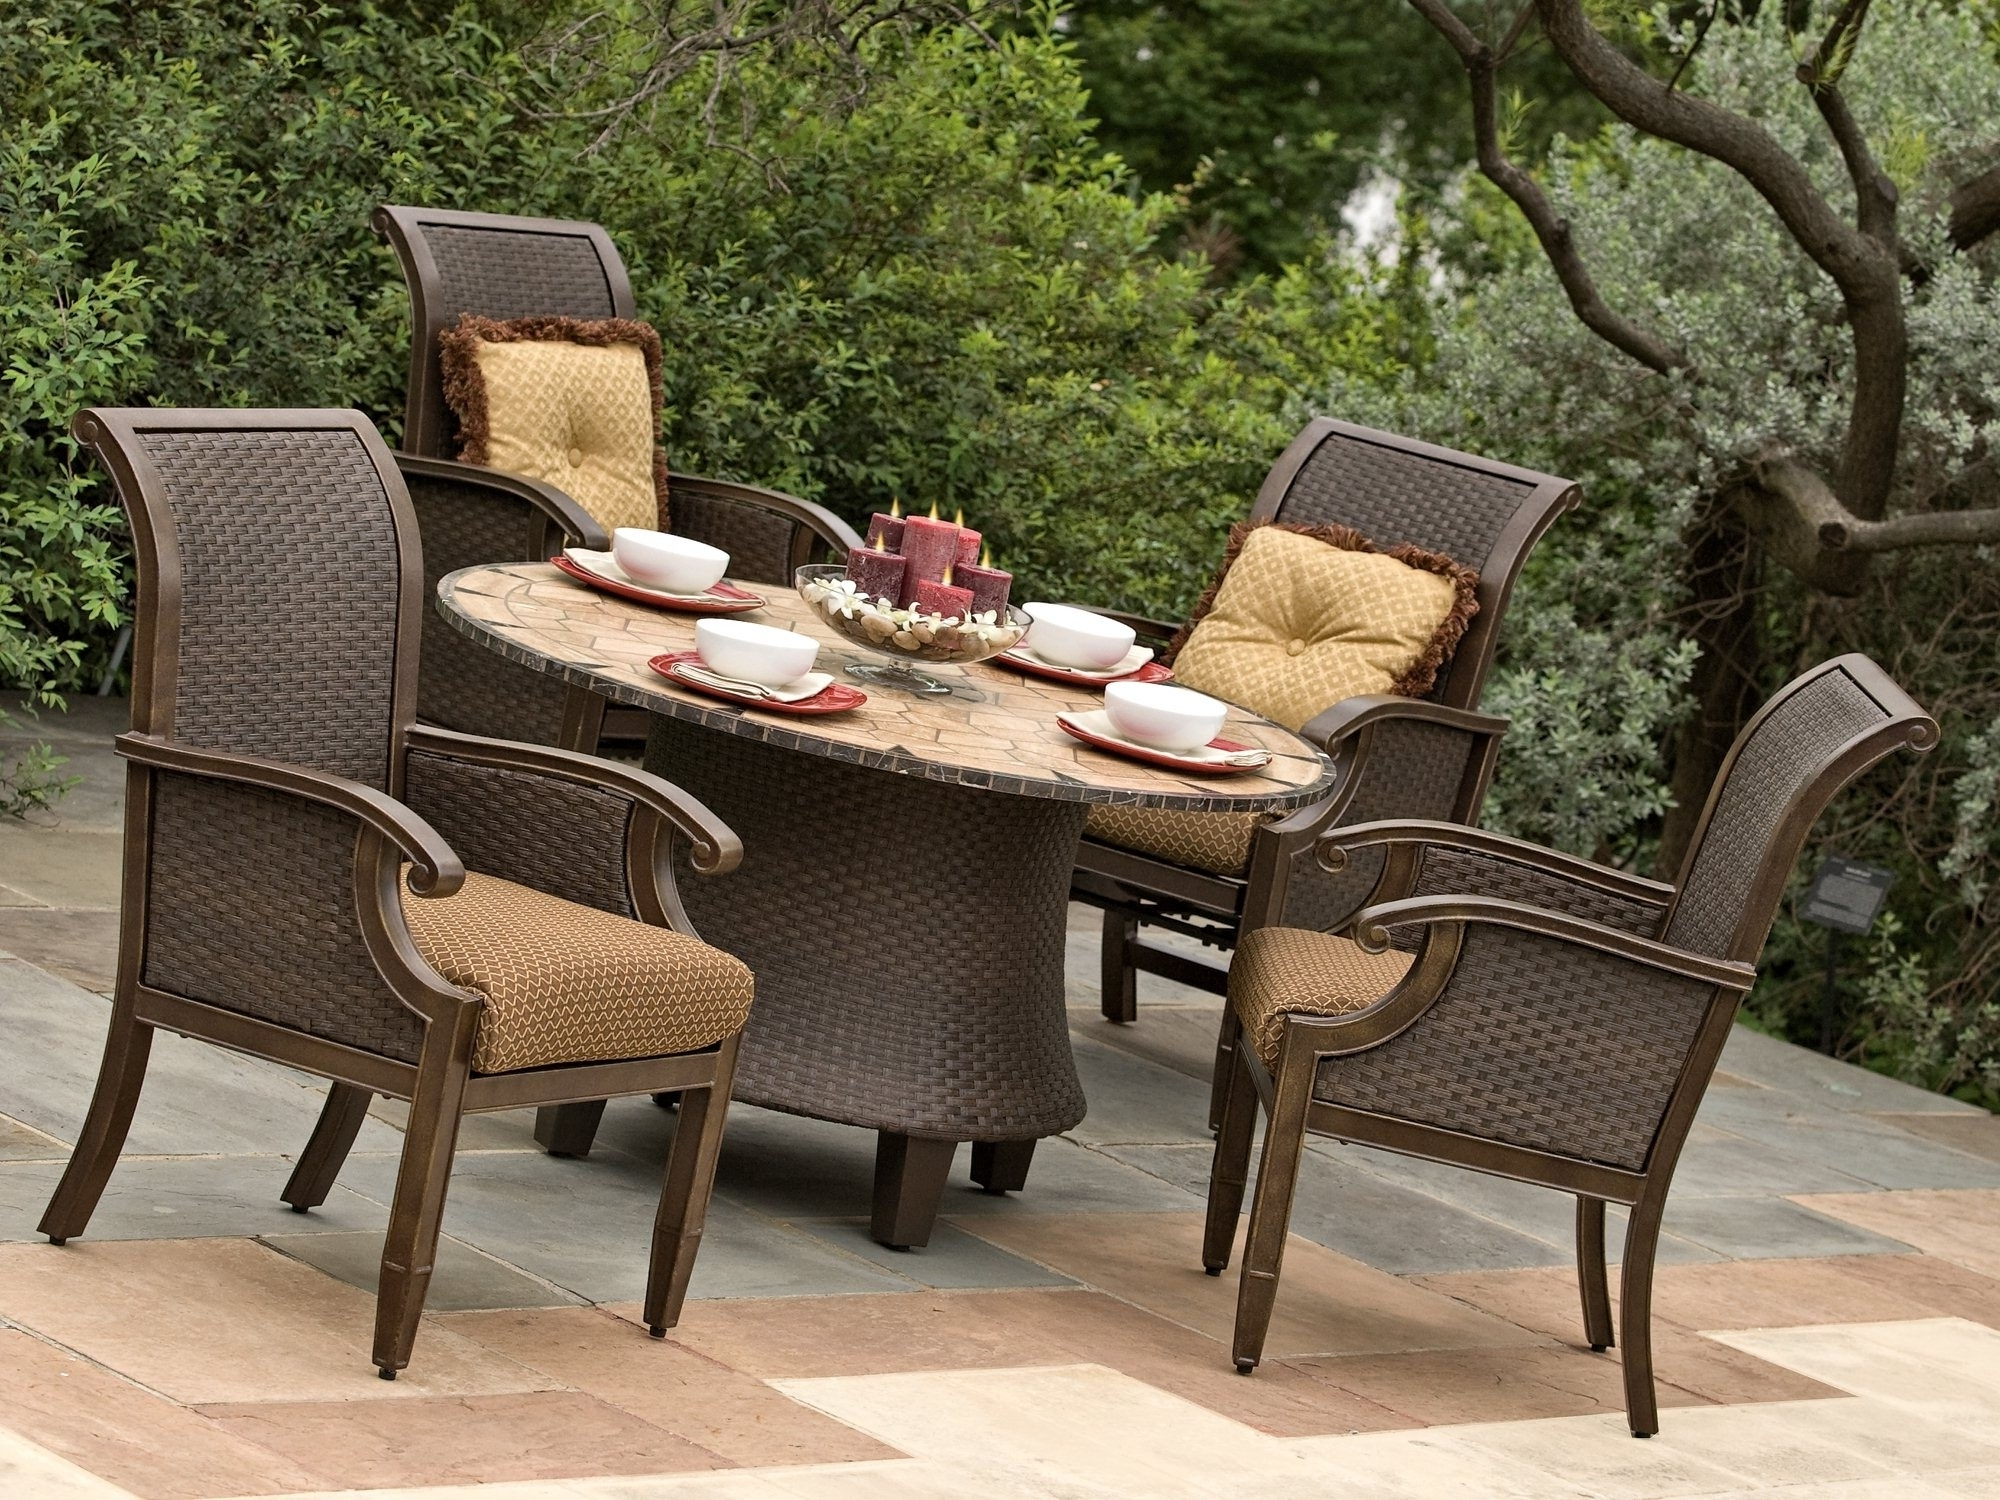 Well Known Patio Furniture Walmart Dining Sets With Umbrella Clearance Sale With Regard To Patio Furniture Sets With Umbrellas (View 18 of 20)